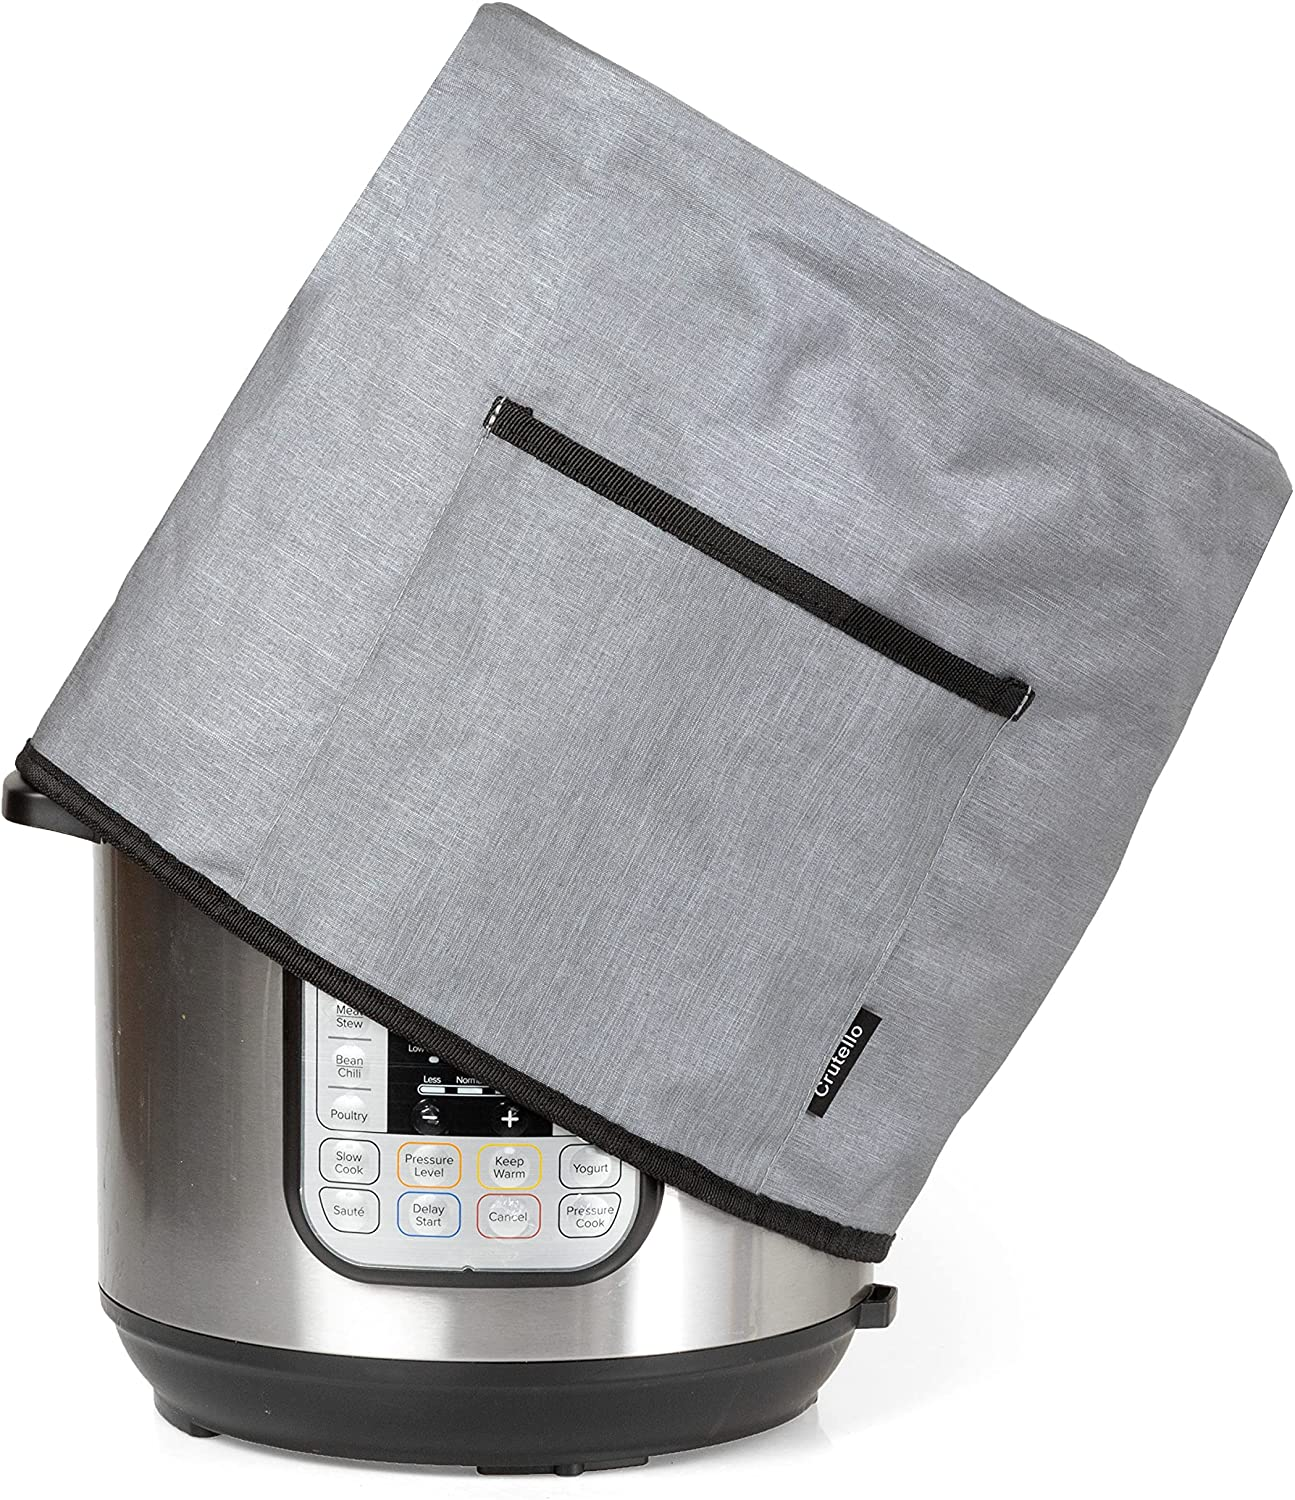 Crutello Instant Pot Cover with Storage Pocket for 6 Quart Pressure Cooker - Small Appliance Dust Covers